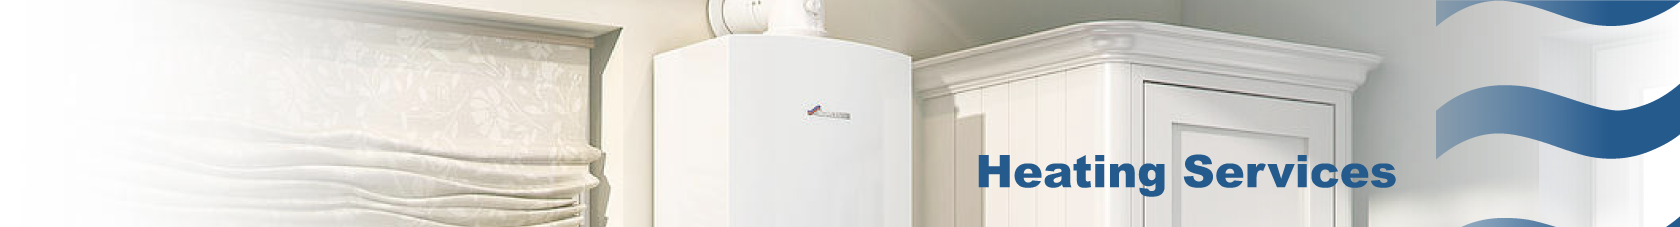 Heating Services Bexhill-on-Sea